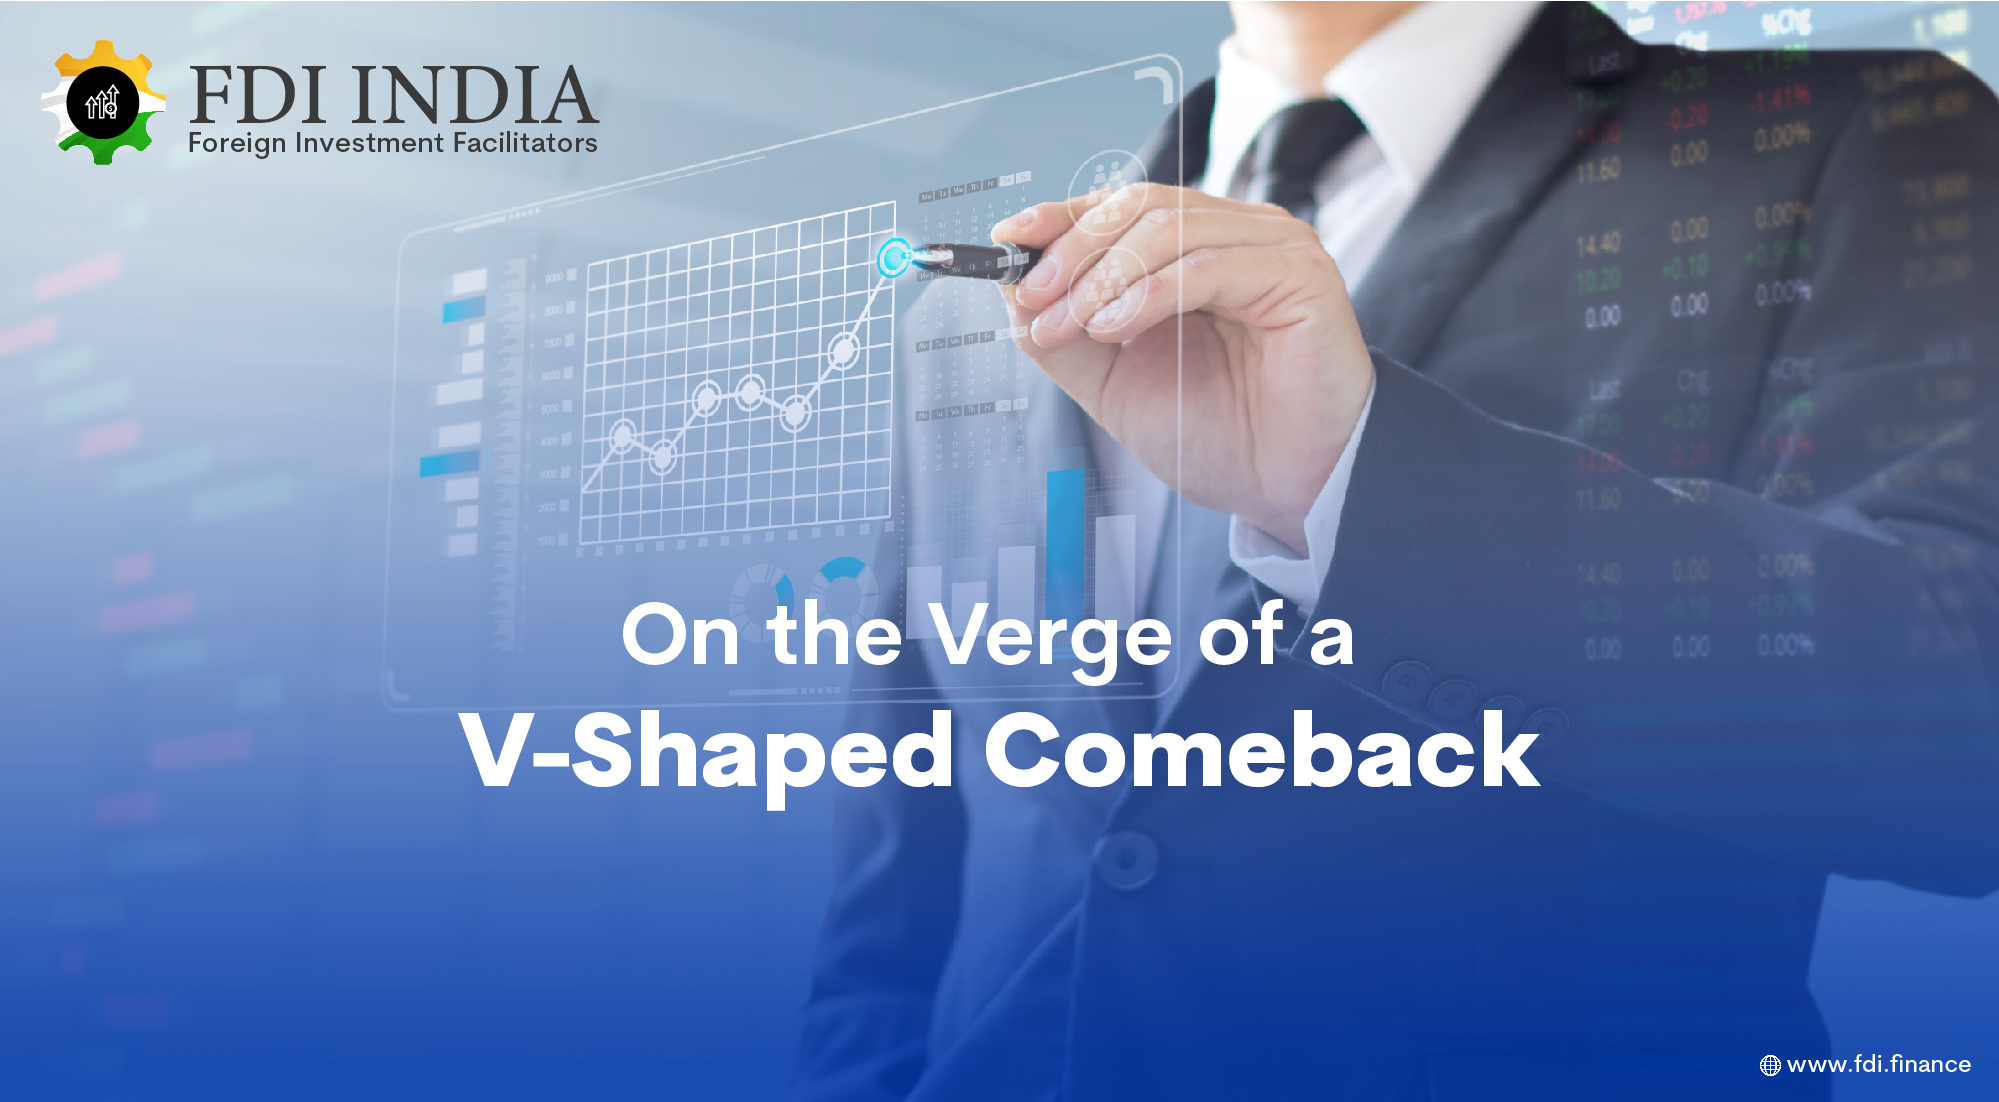 On the Verge of a V-Shaped Comeback